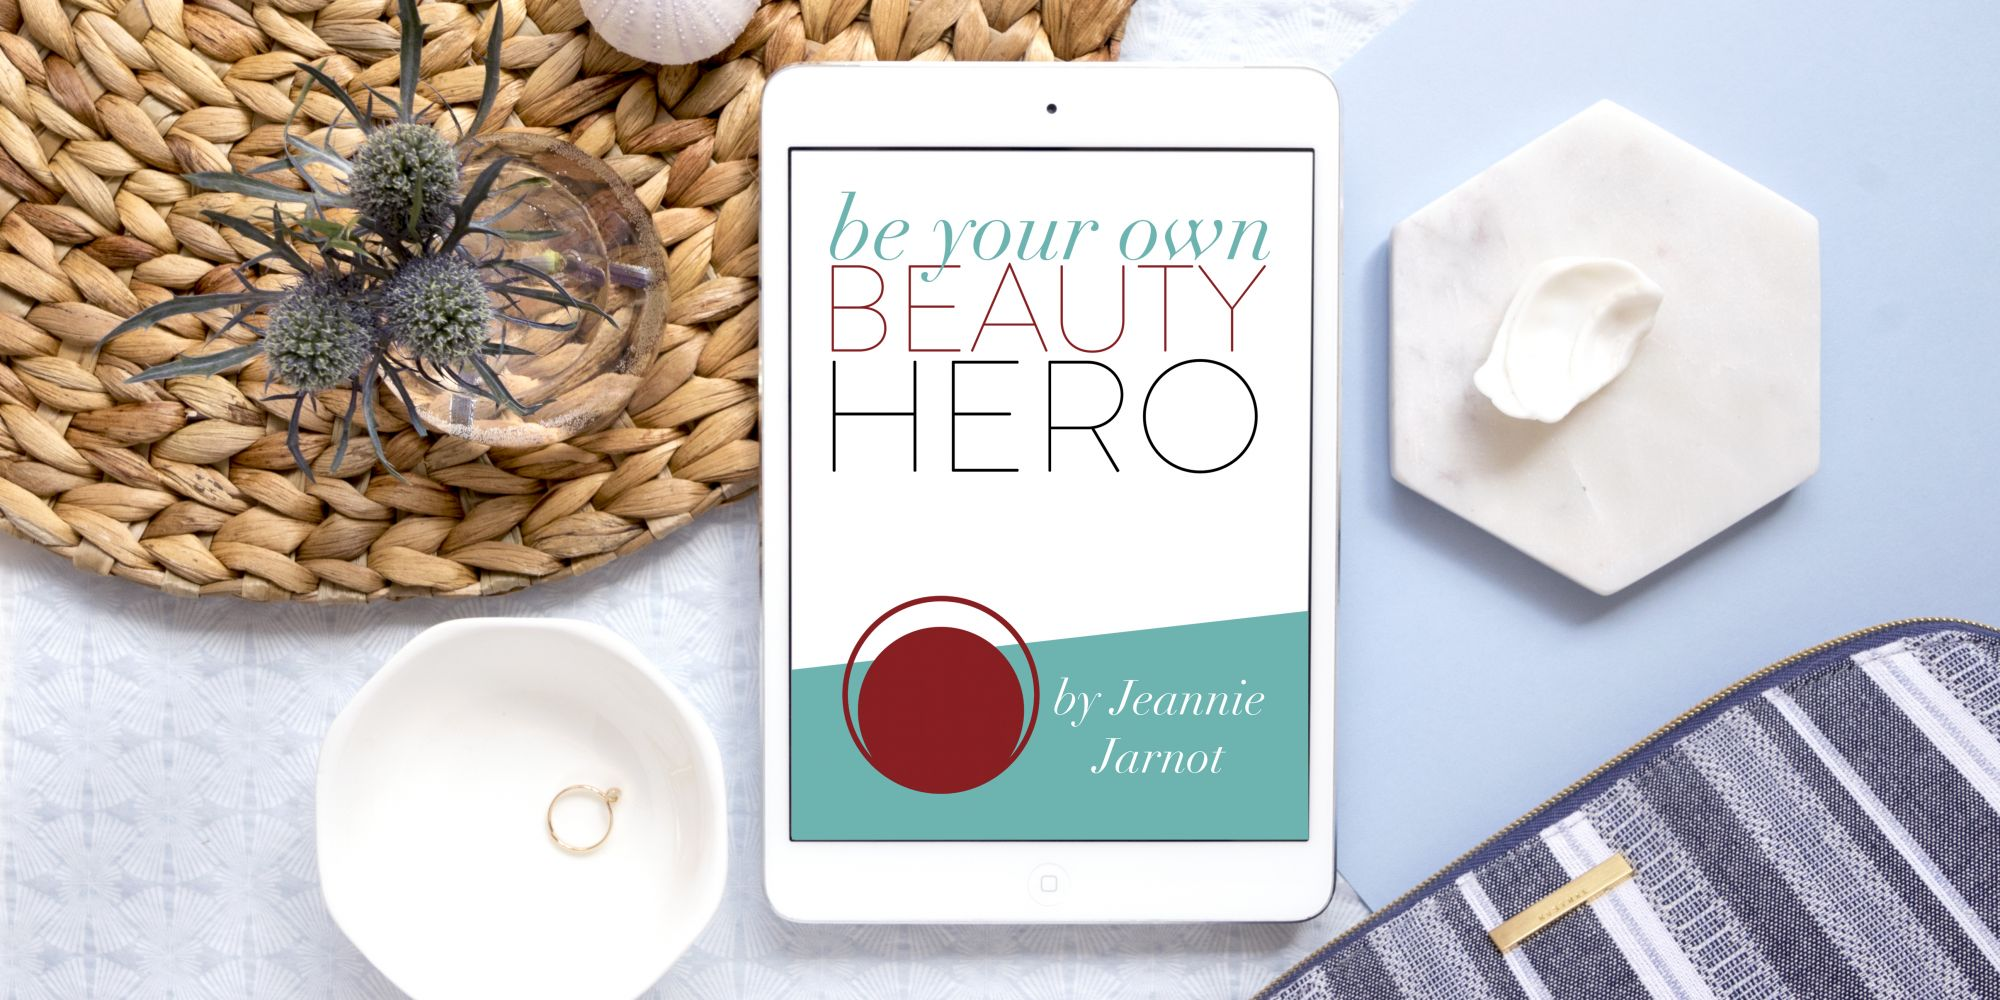 Beauty Heroes' Jeannie Jarnot Wants To Kick Fear Out Of Natural Beauty Shopping